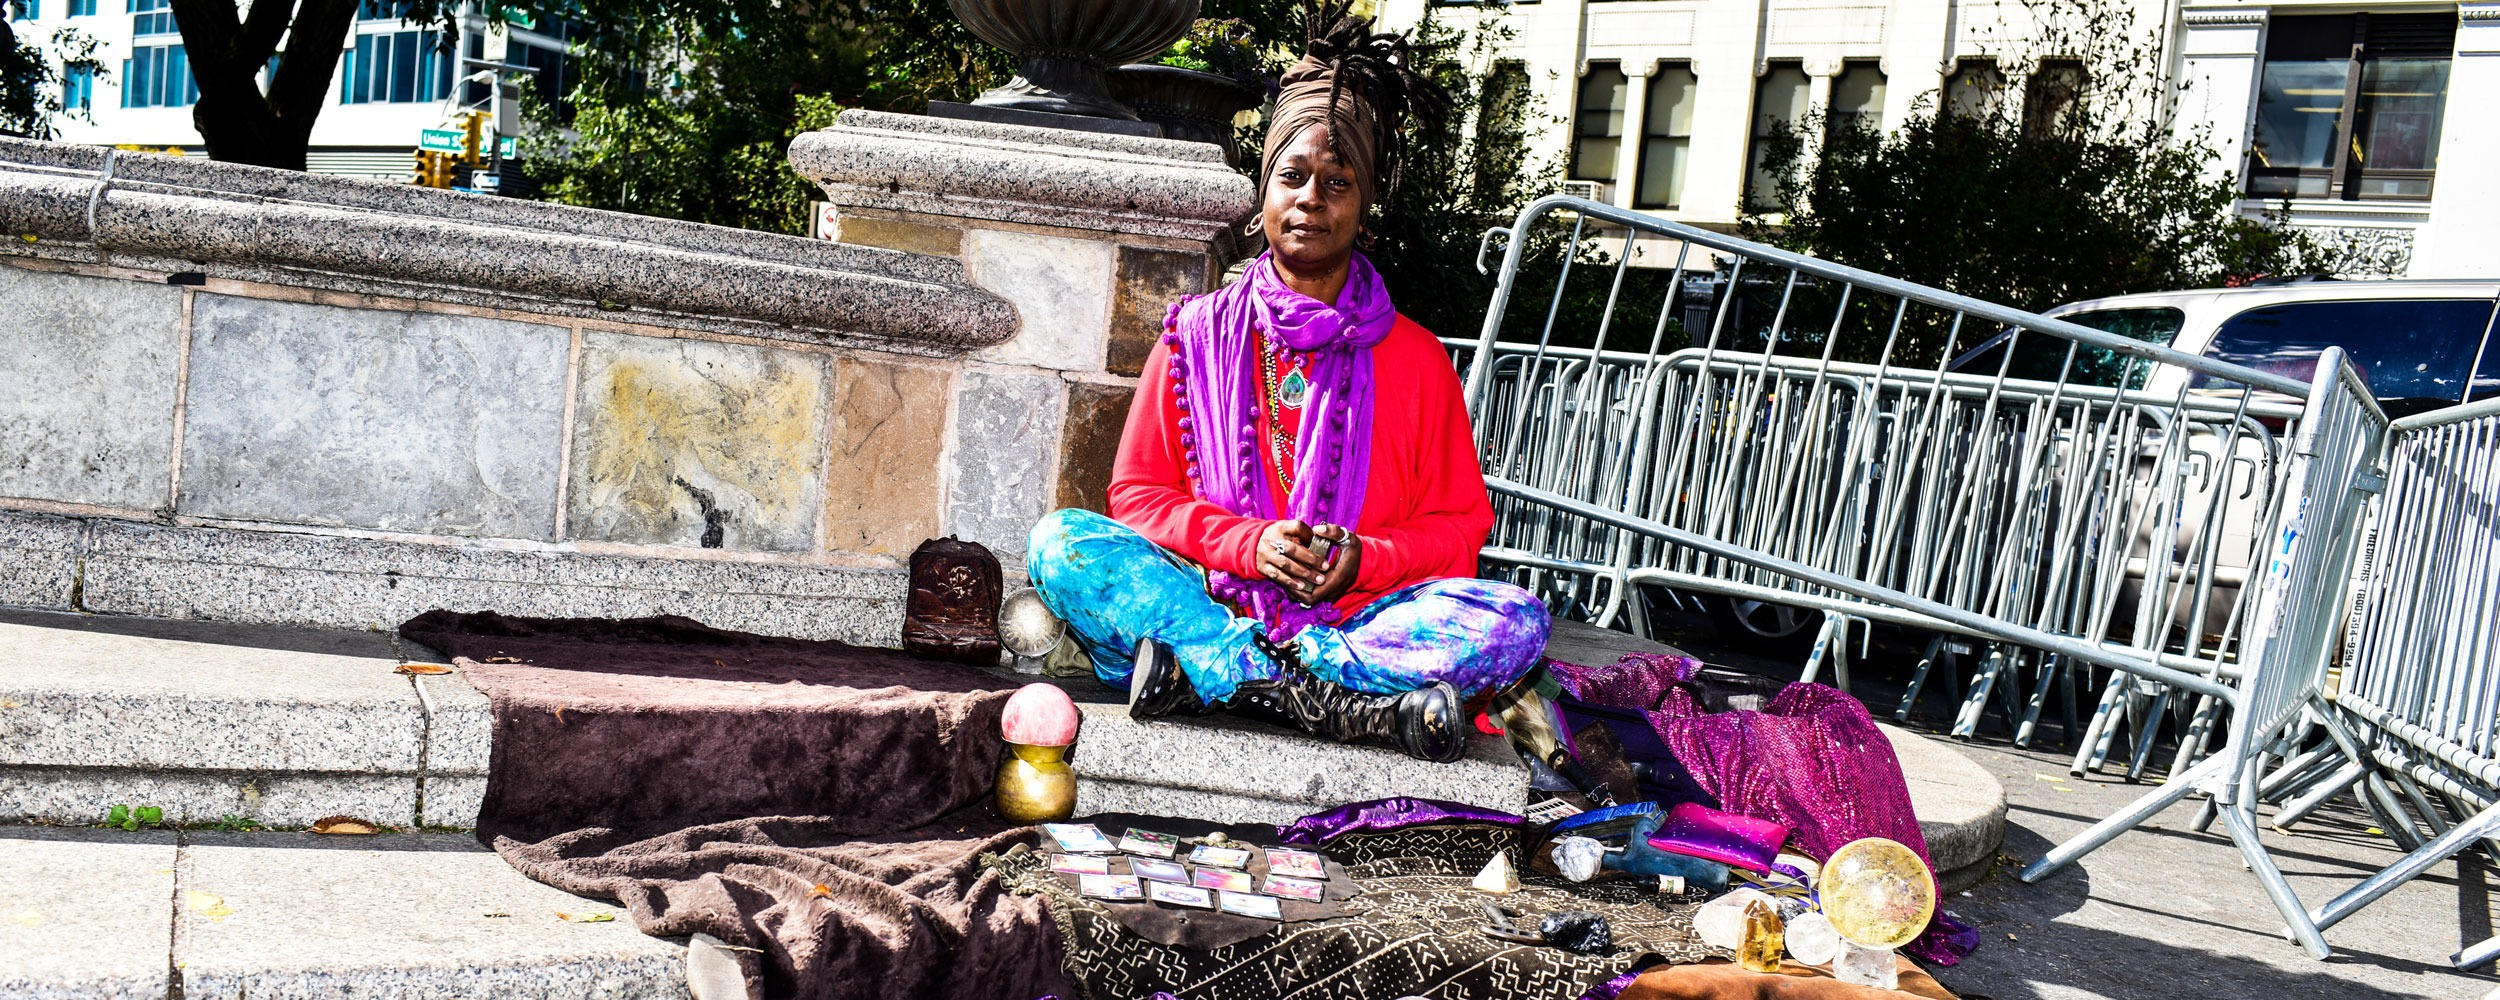 I'm the Union Square psychic and I'll cleanse your soul for ten bucks